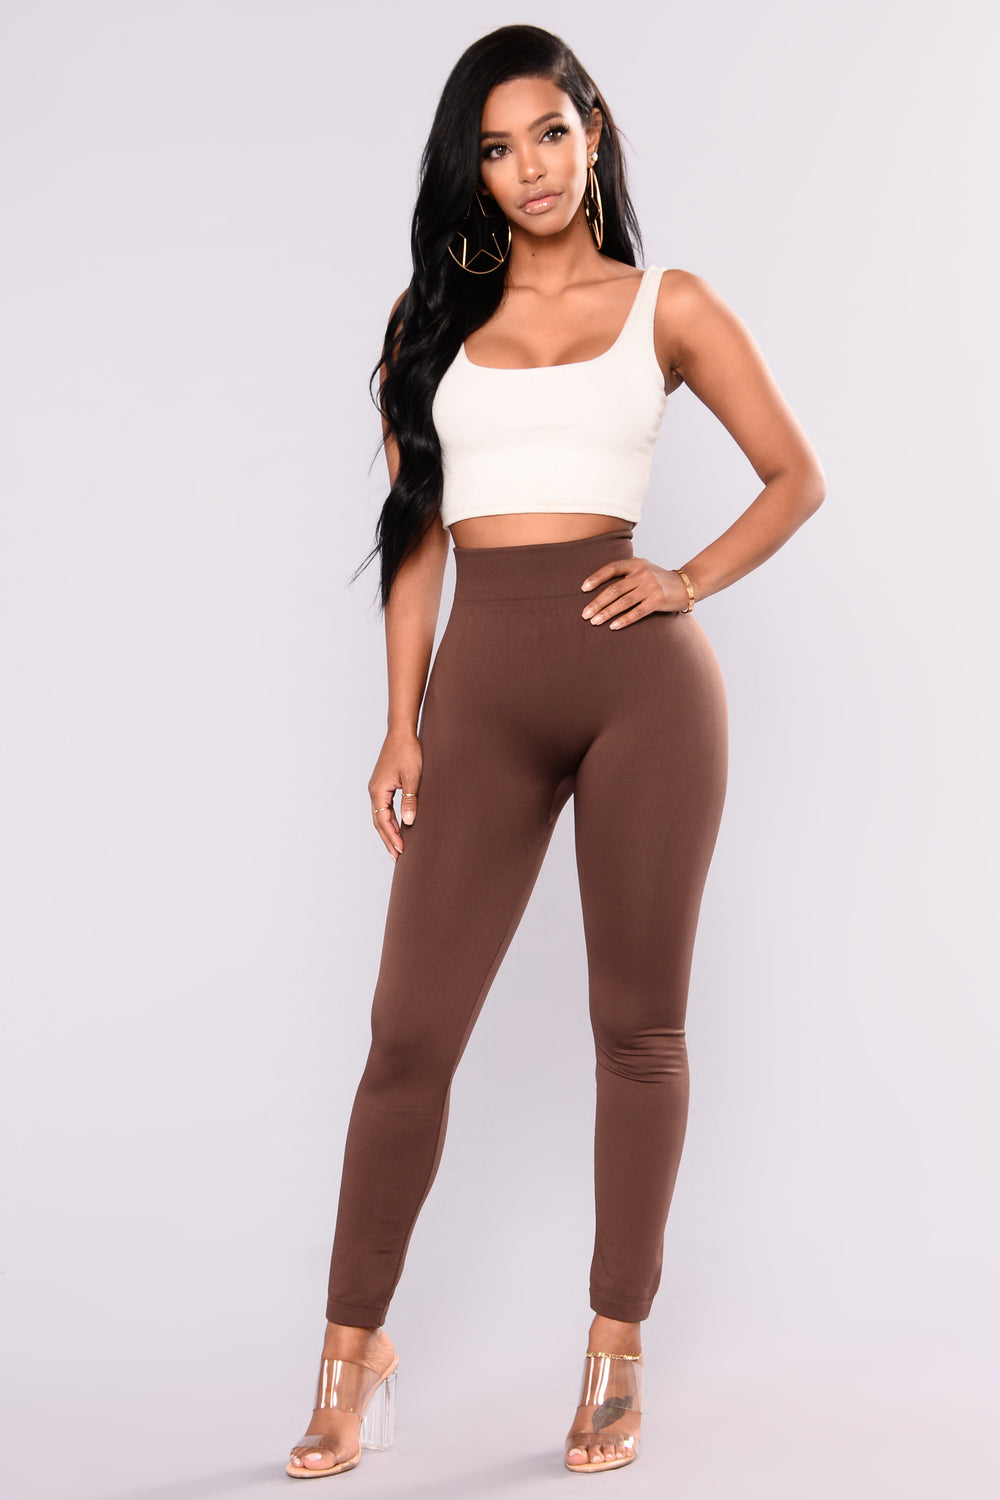 Yes Fleece II Leggings - Brown